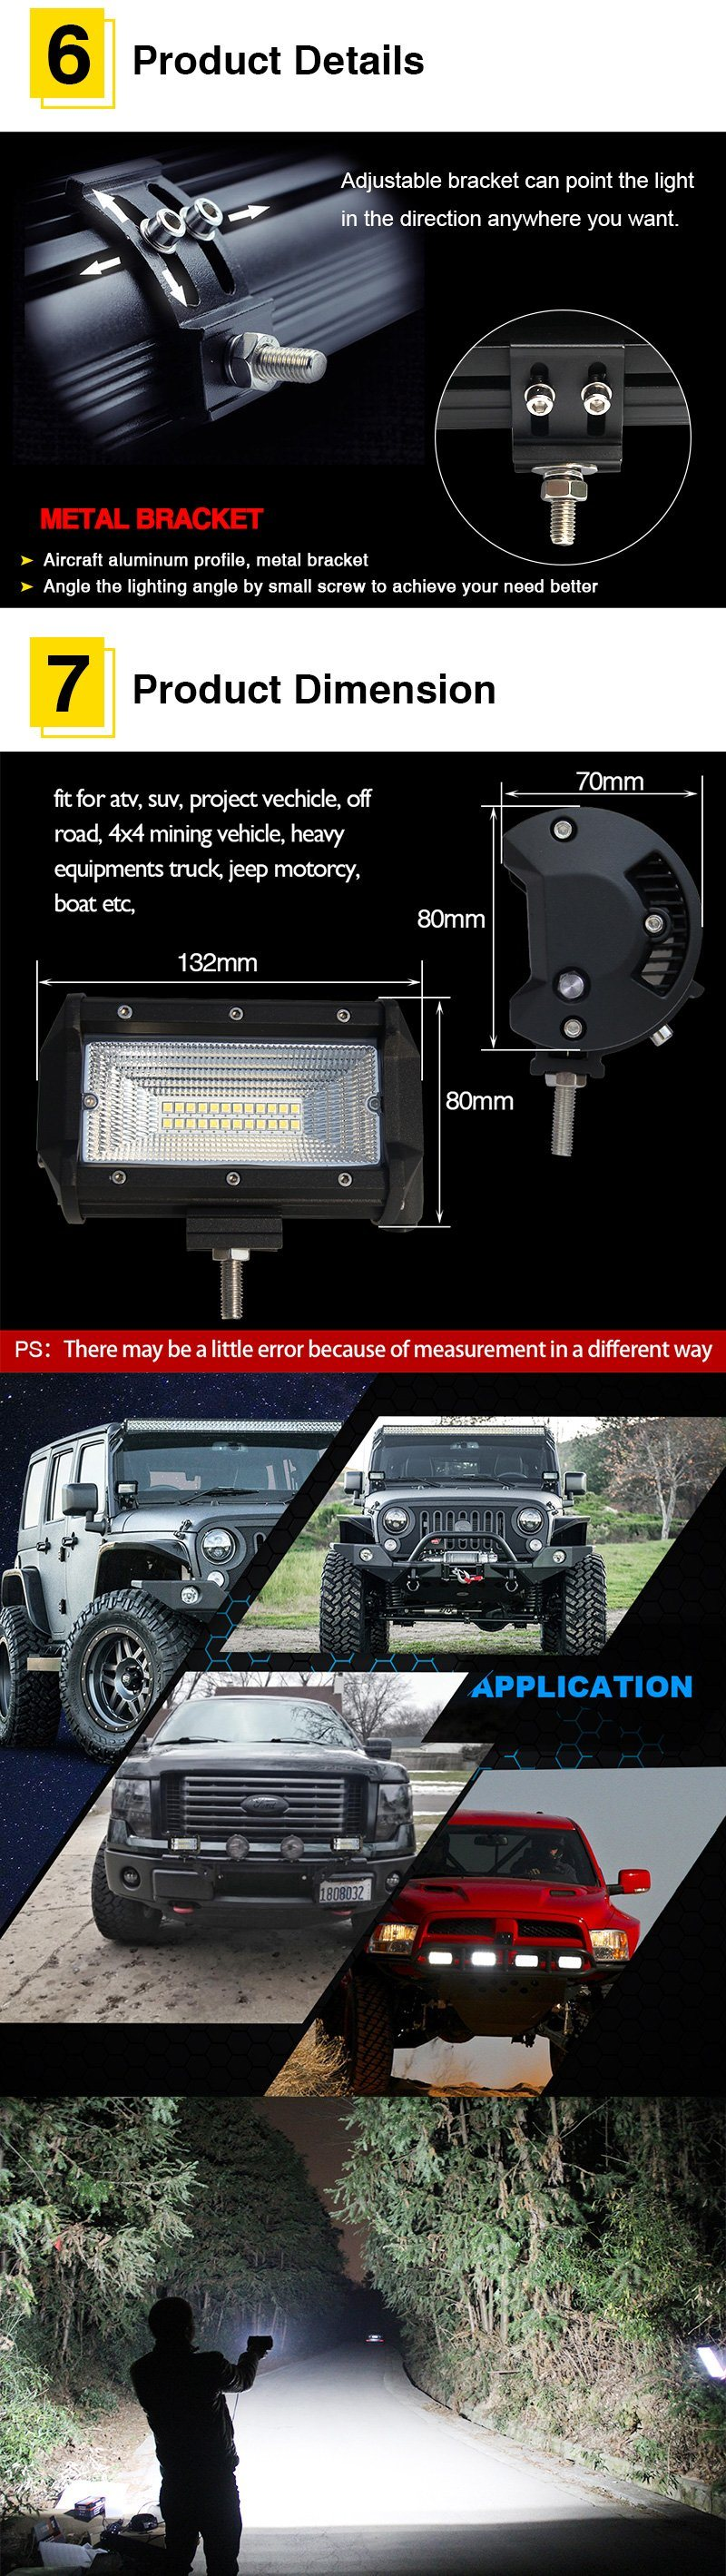 Shop For Colight 2pc 5inch 72w Off Road Led Light Bar Spot Beam Wiring Harness Fasteners Boats Package Content 1pcs Work Lights Adjustable Mounting Bracket Screw Sets